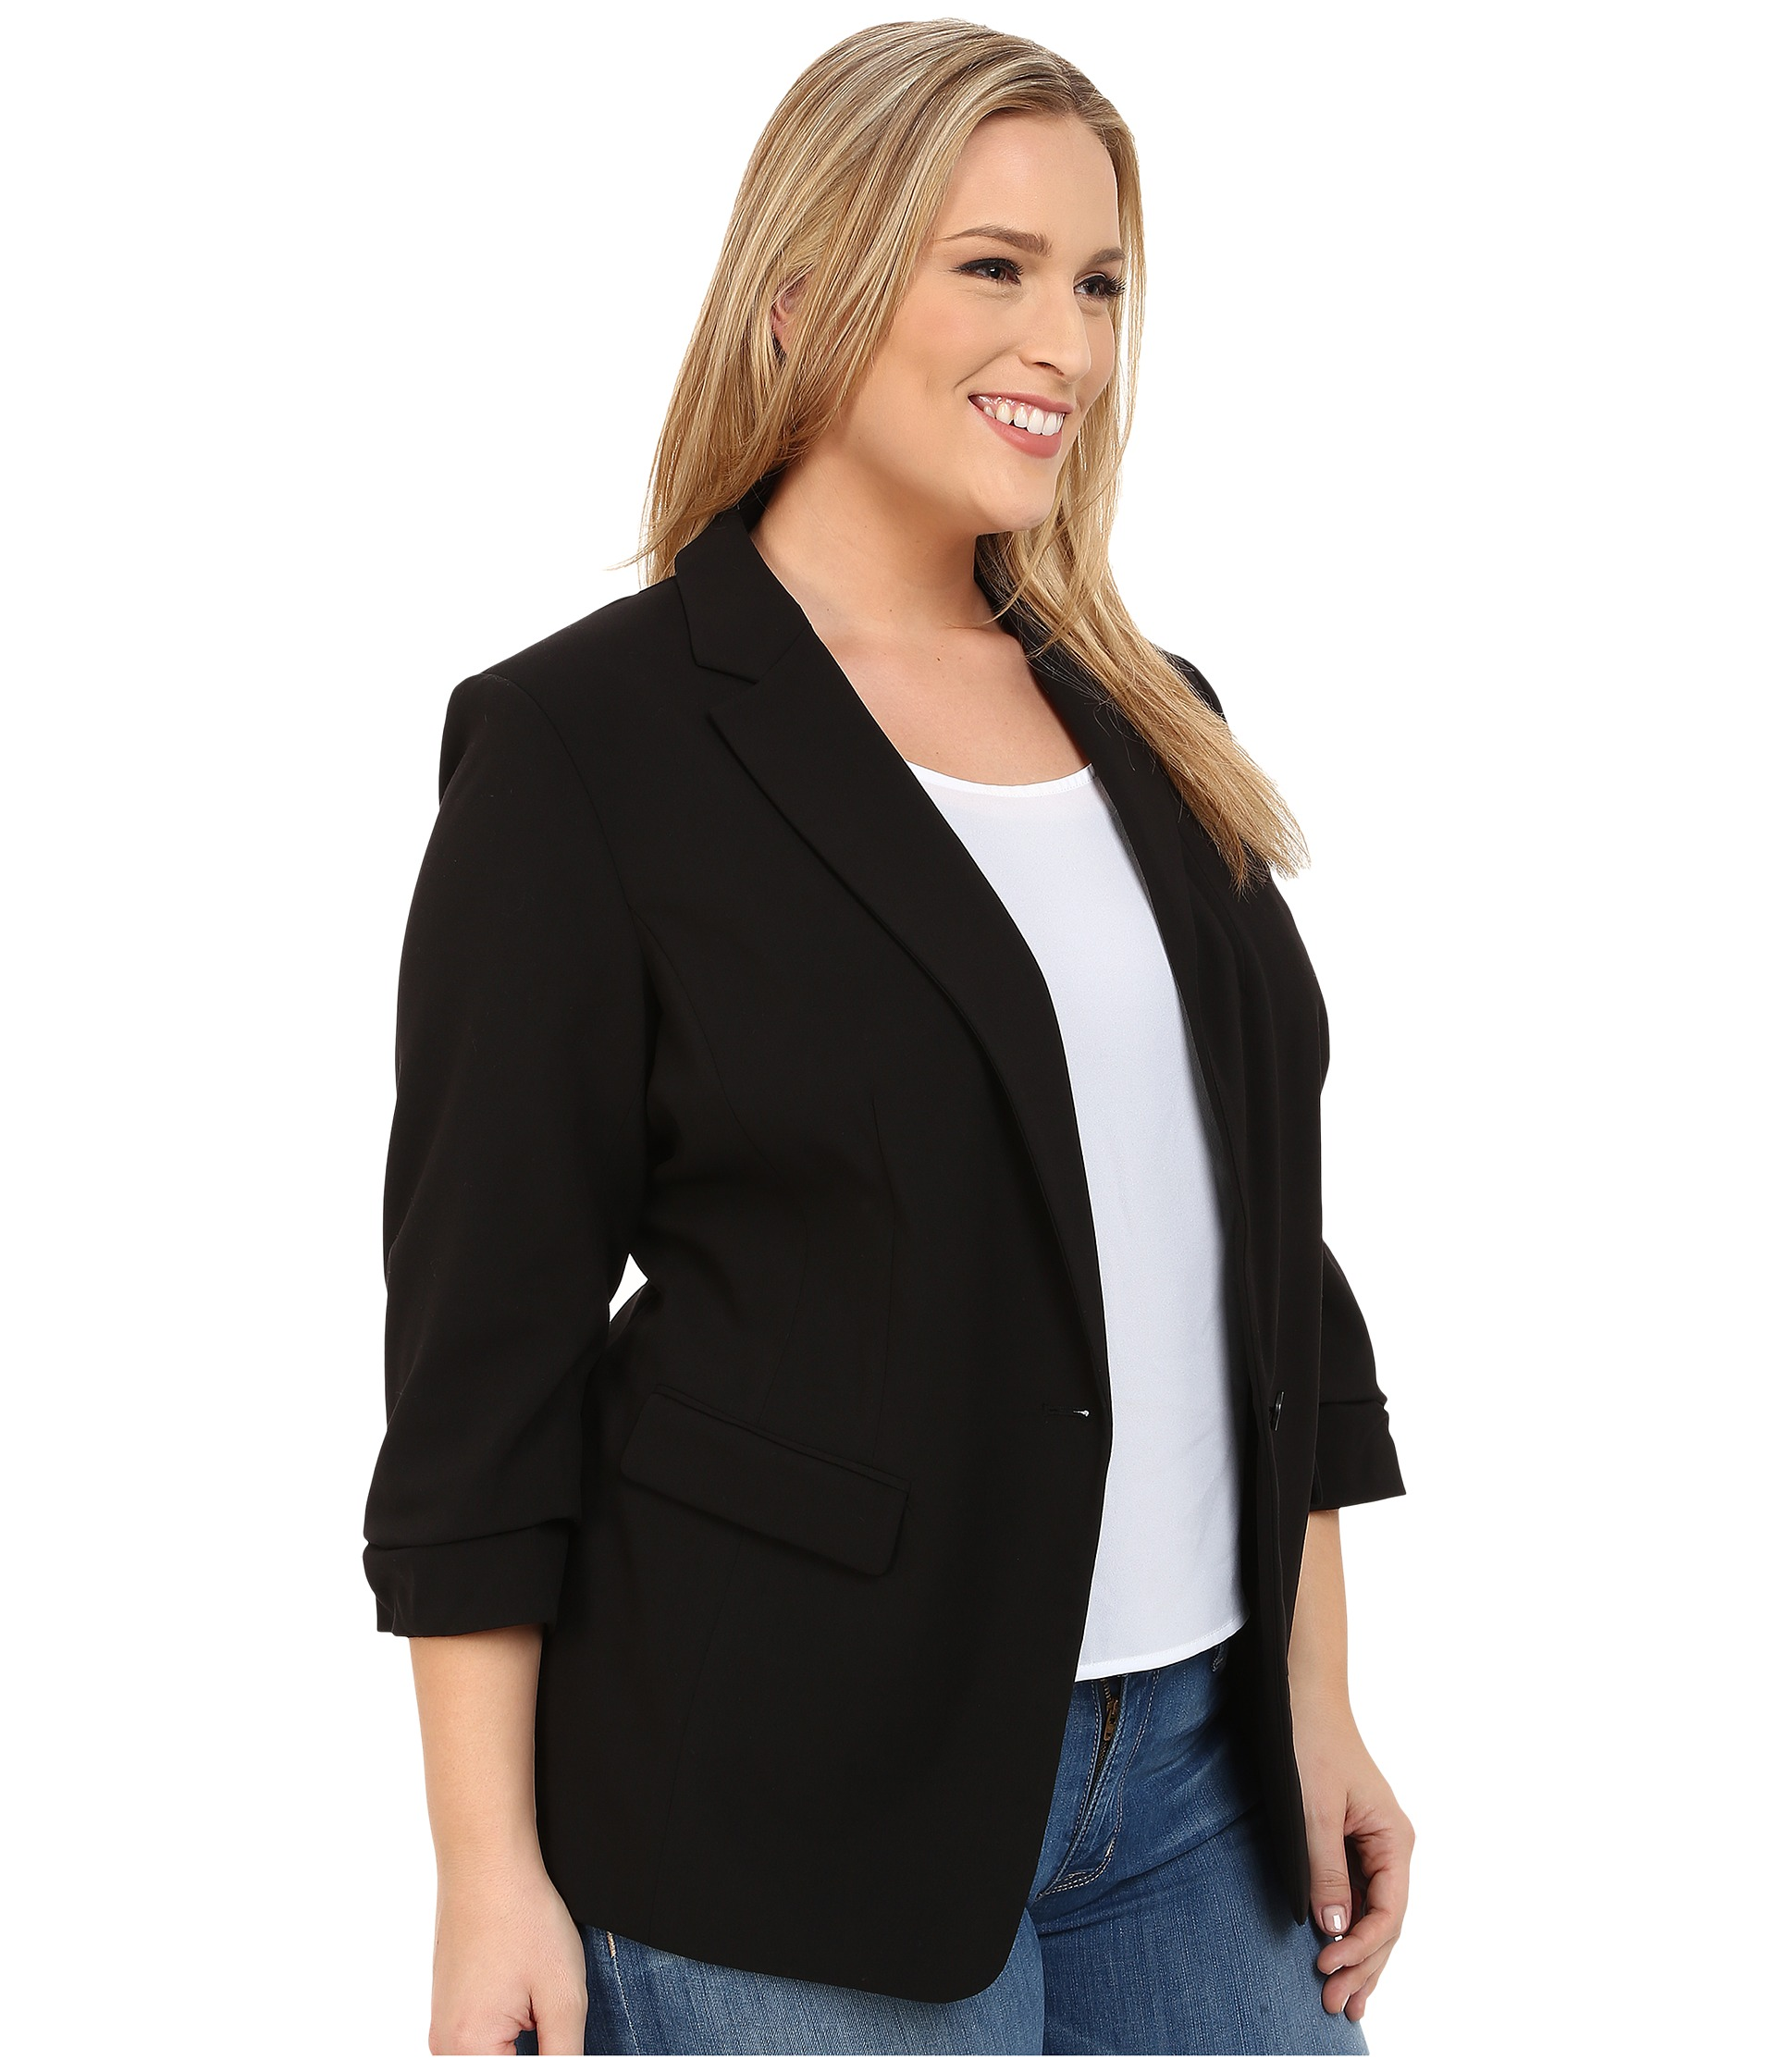 Shop dressbarn for the latest in plus size jones studio® blazers & toppers. You'll discover on trend styles in a variety of patterns and prints that can be worn for any occasion. Add some extra flair to your weekend or workwear wardrobe with plus size jones studio® blazers & toppers.